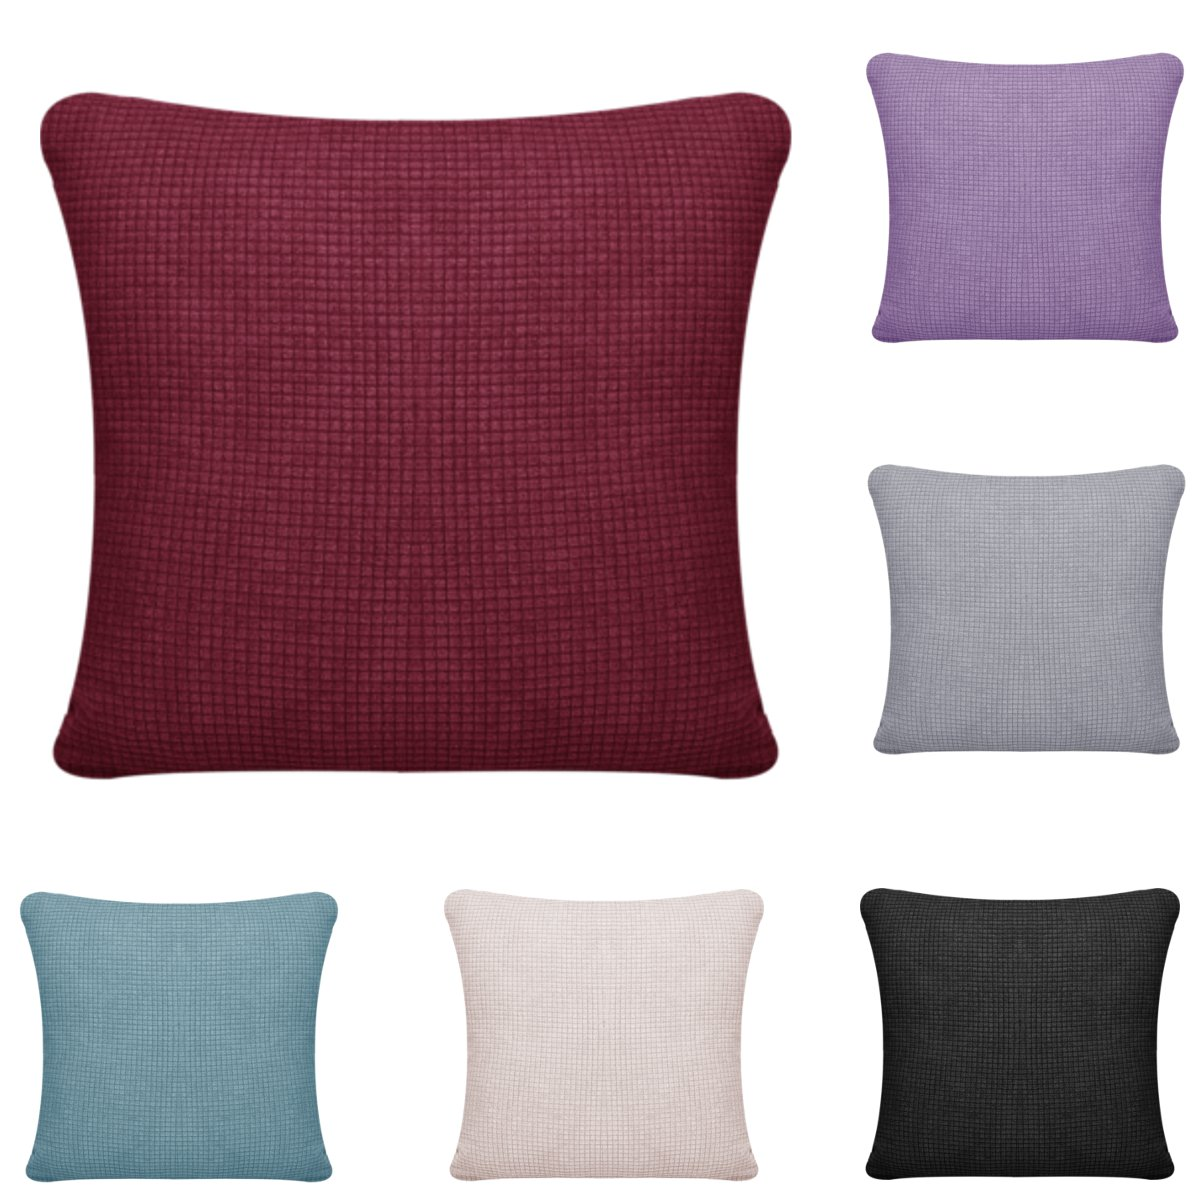 Soft Throw Pillow Cover Polyester Cushion Cover Waterproof Lattice Cushion Cover For Living Room Sofa Home Decoration 6 Colors image